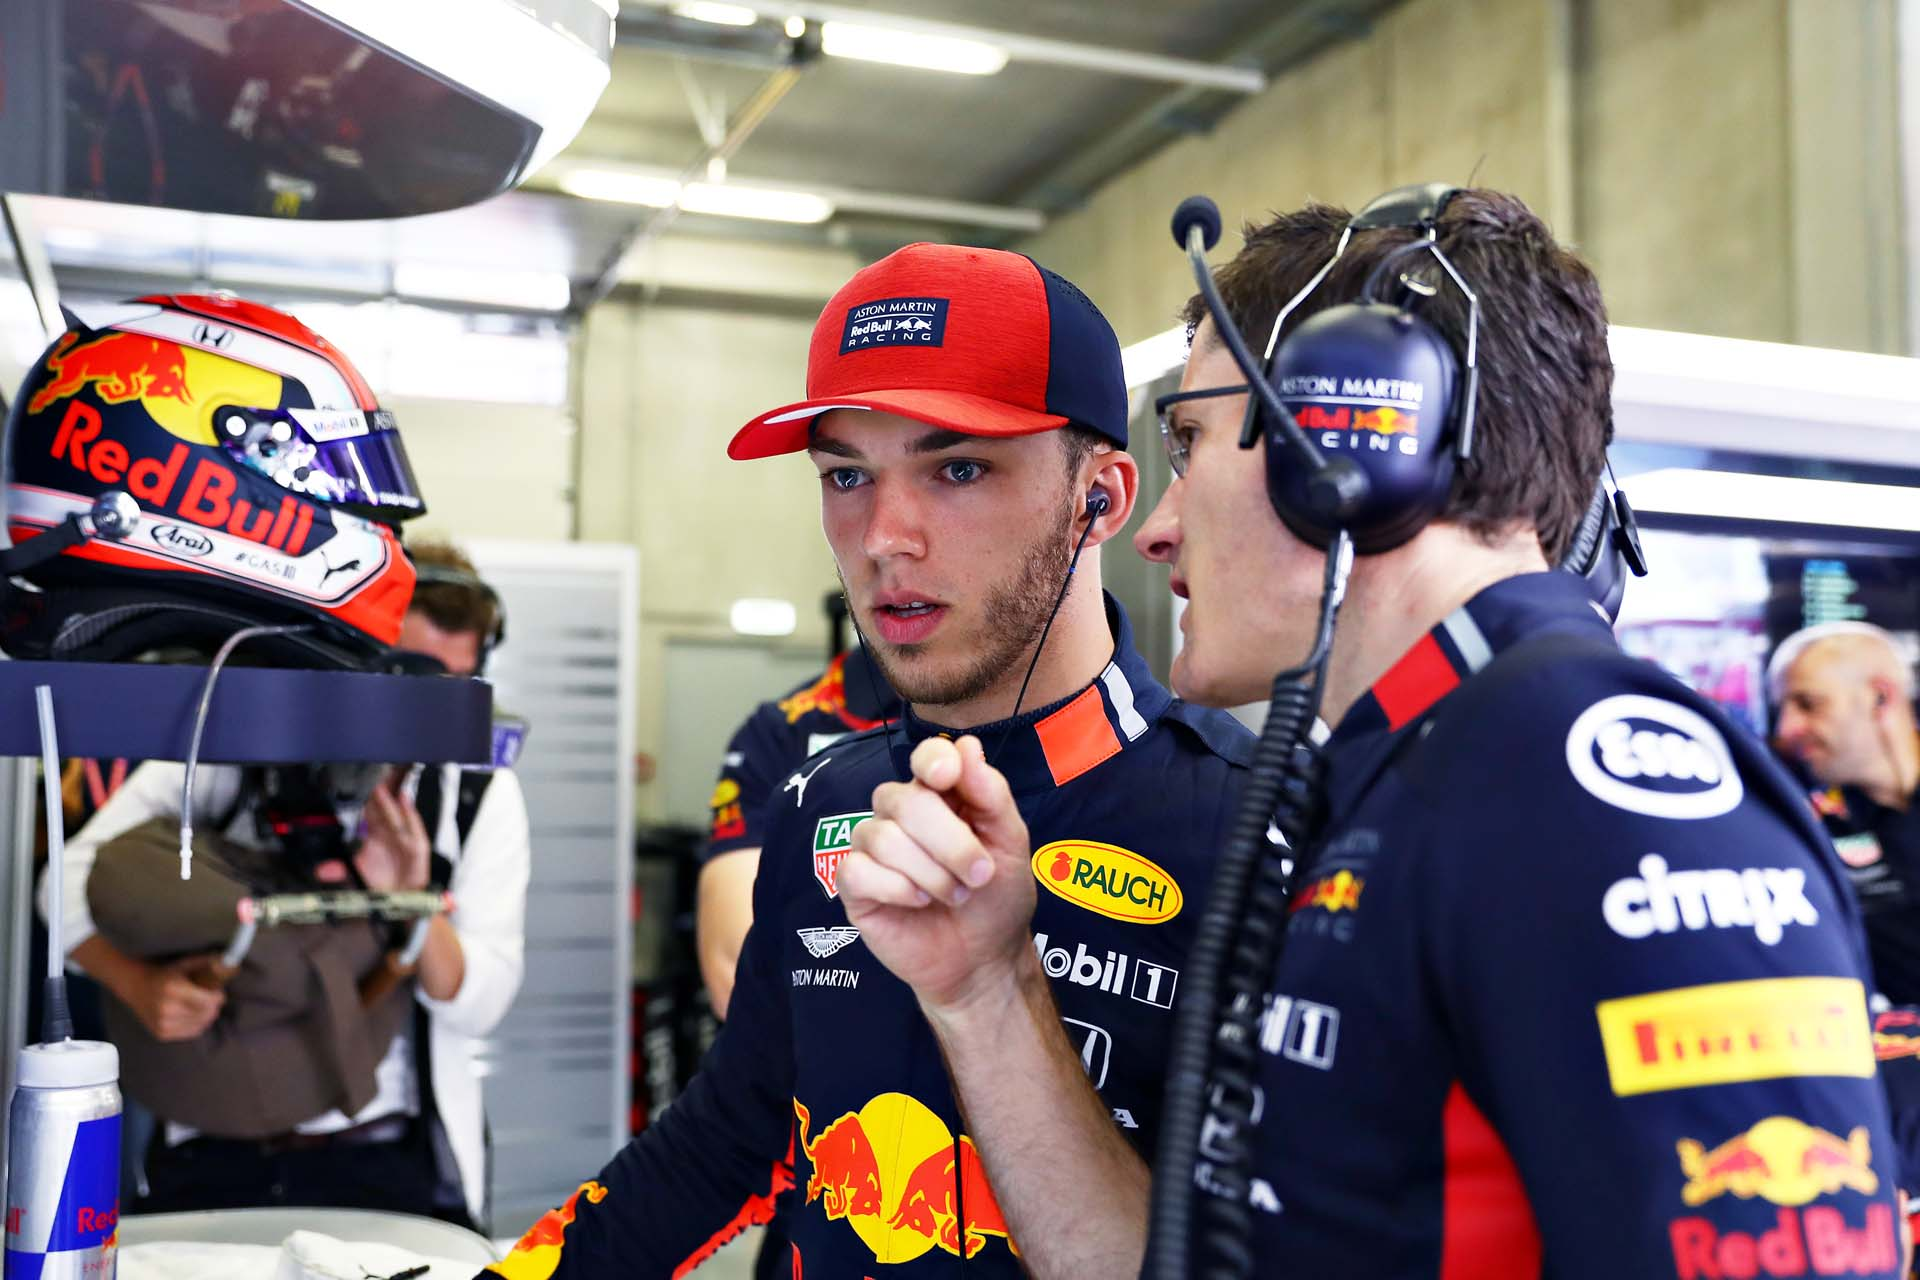 SPIELBERG, AUSTRIA - JUNE 29: Pierre Gasly of France and Red Bull Racing prepares to drive in the garage during qualifying for the F1 Grand Prix of Austria at Red Bull Ring on June 29, 2019 in Spielberg, Austria. (Photo by Mark Thompson/Getty Images) // Getty Images / Red Bull Content Pool  // AP-1ZSYMNEGN2111 // Usage for editorial use only // Please go to www.redbullcontentpool.com for further information. //